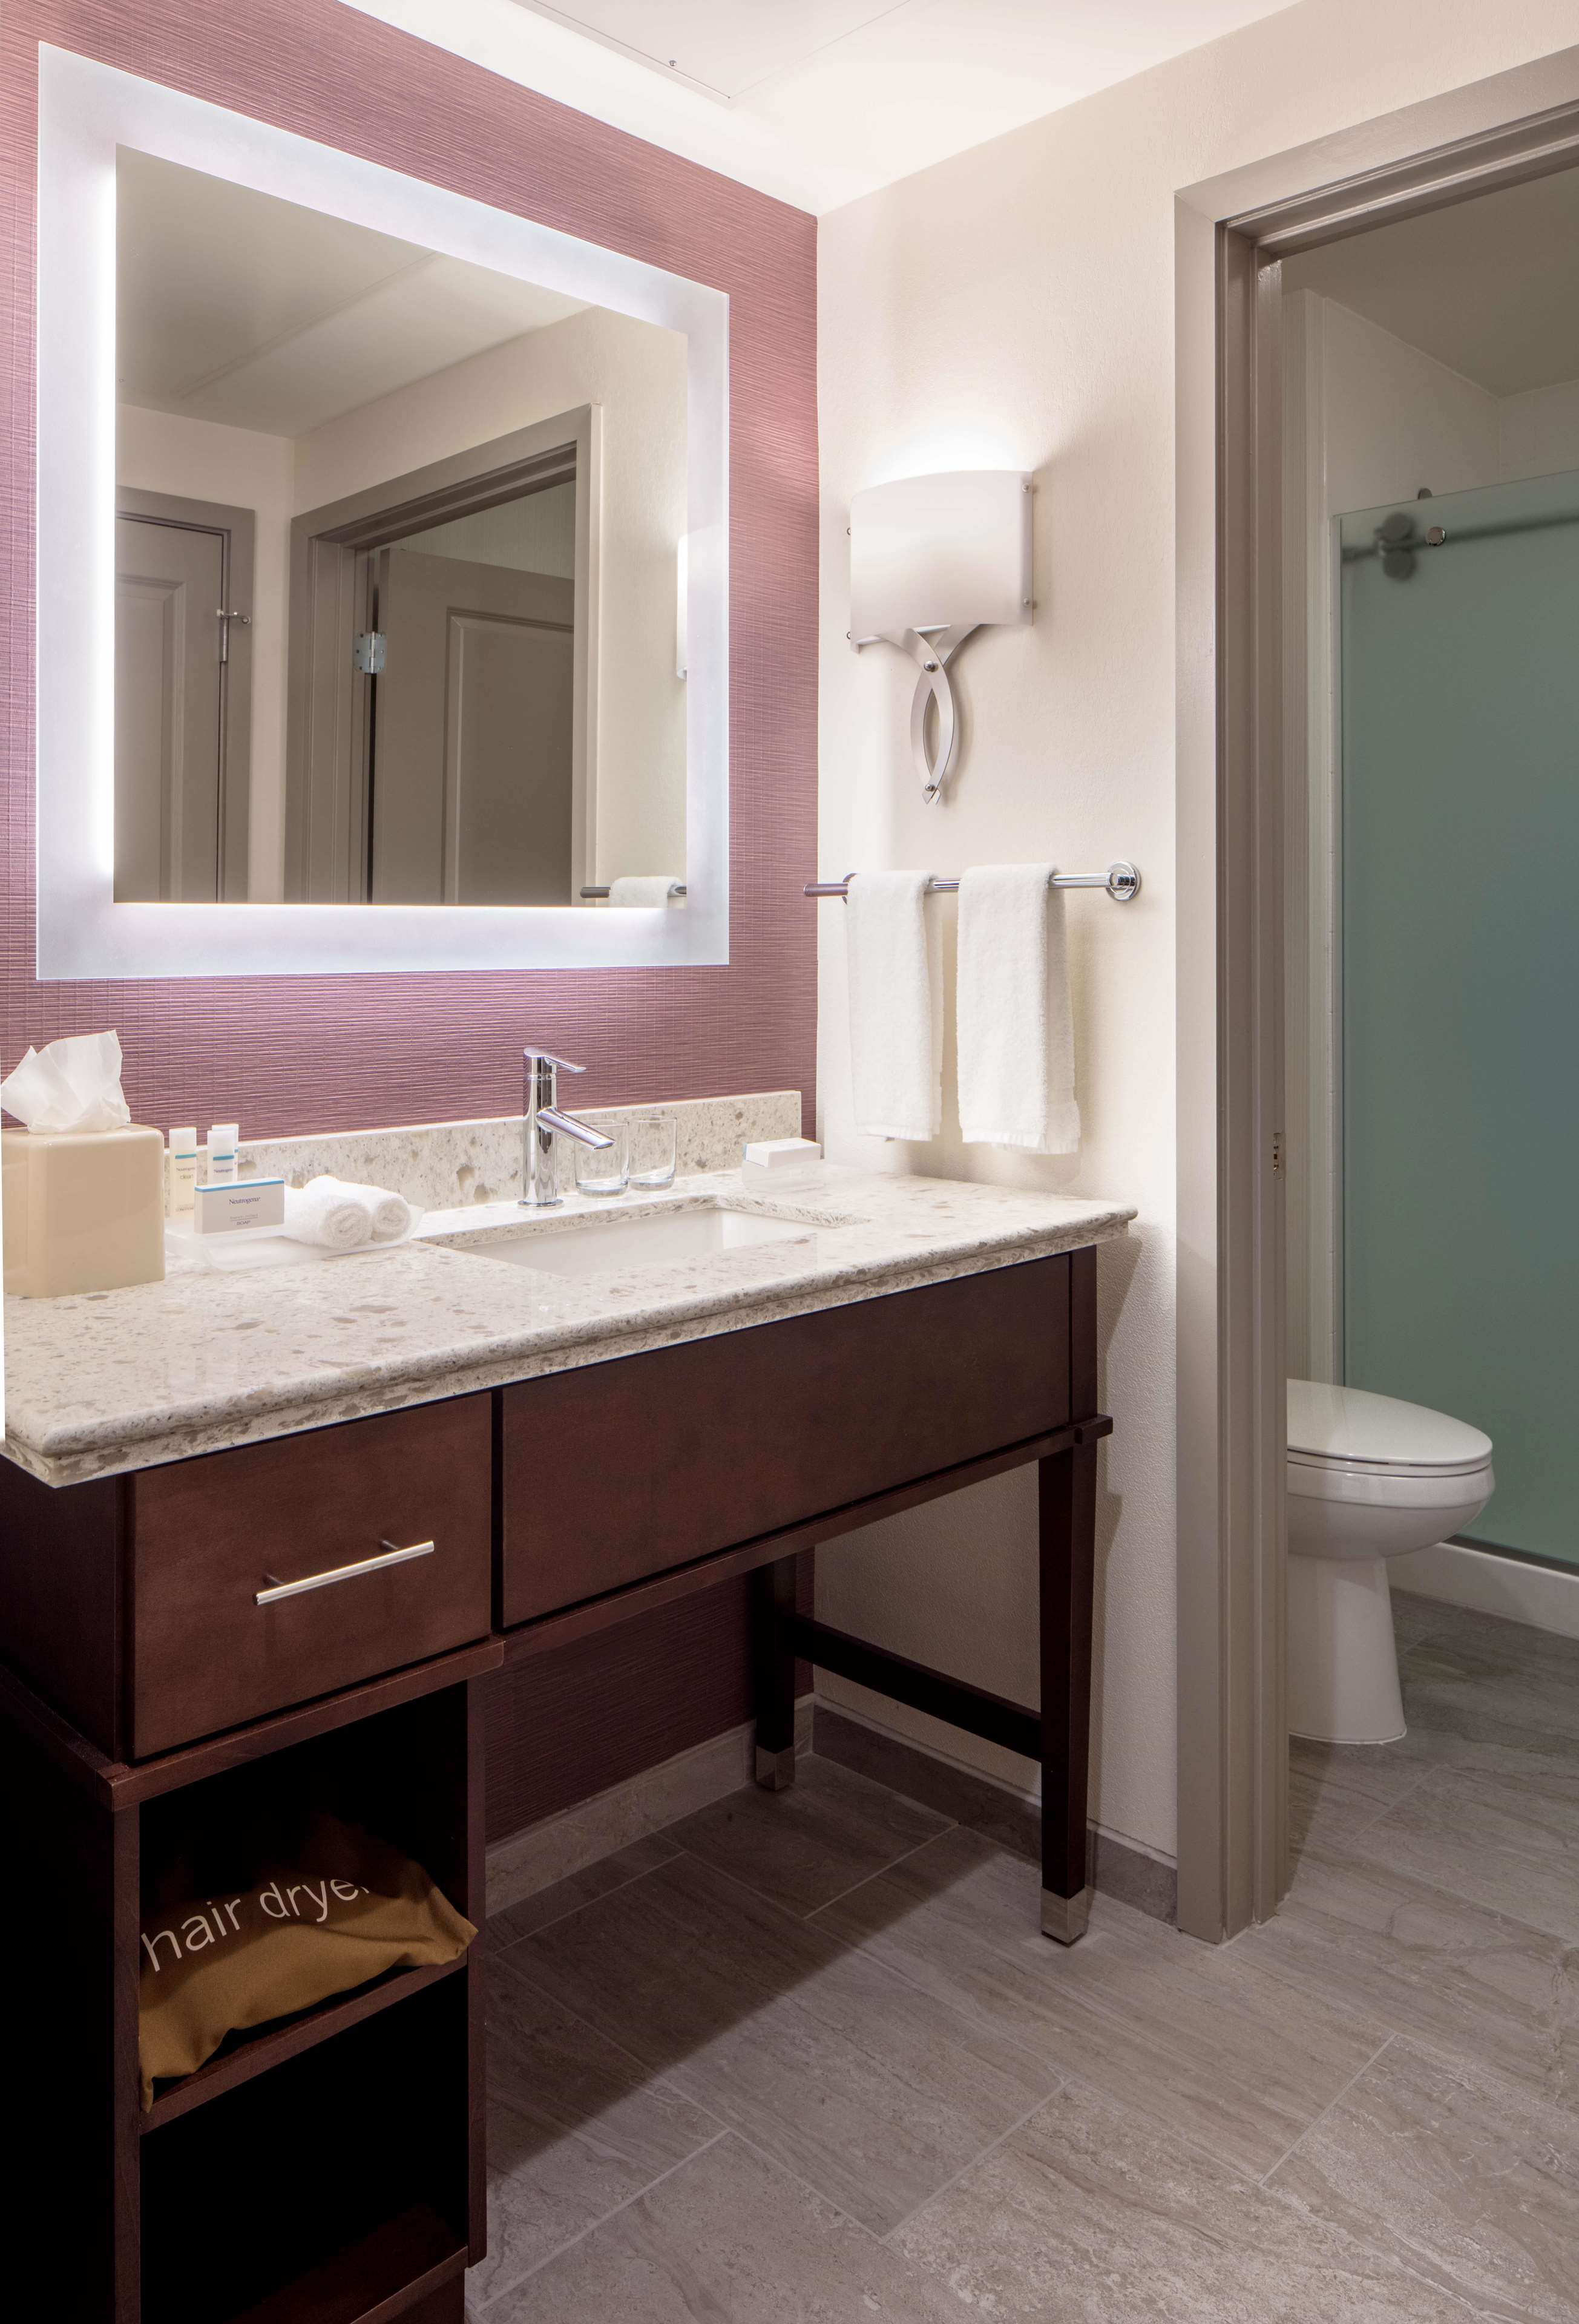 Homewood Suites by Hilton New Orleans French Quarter image 40